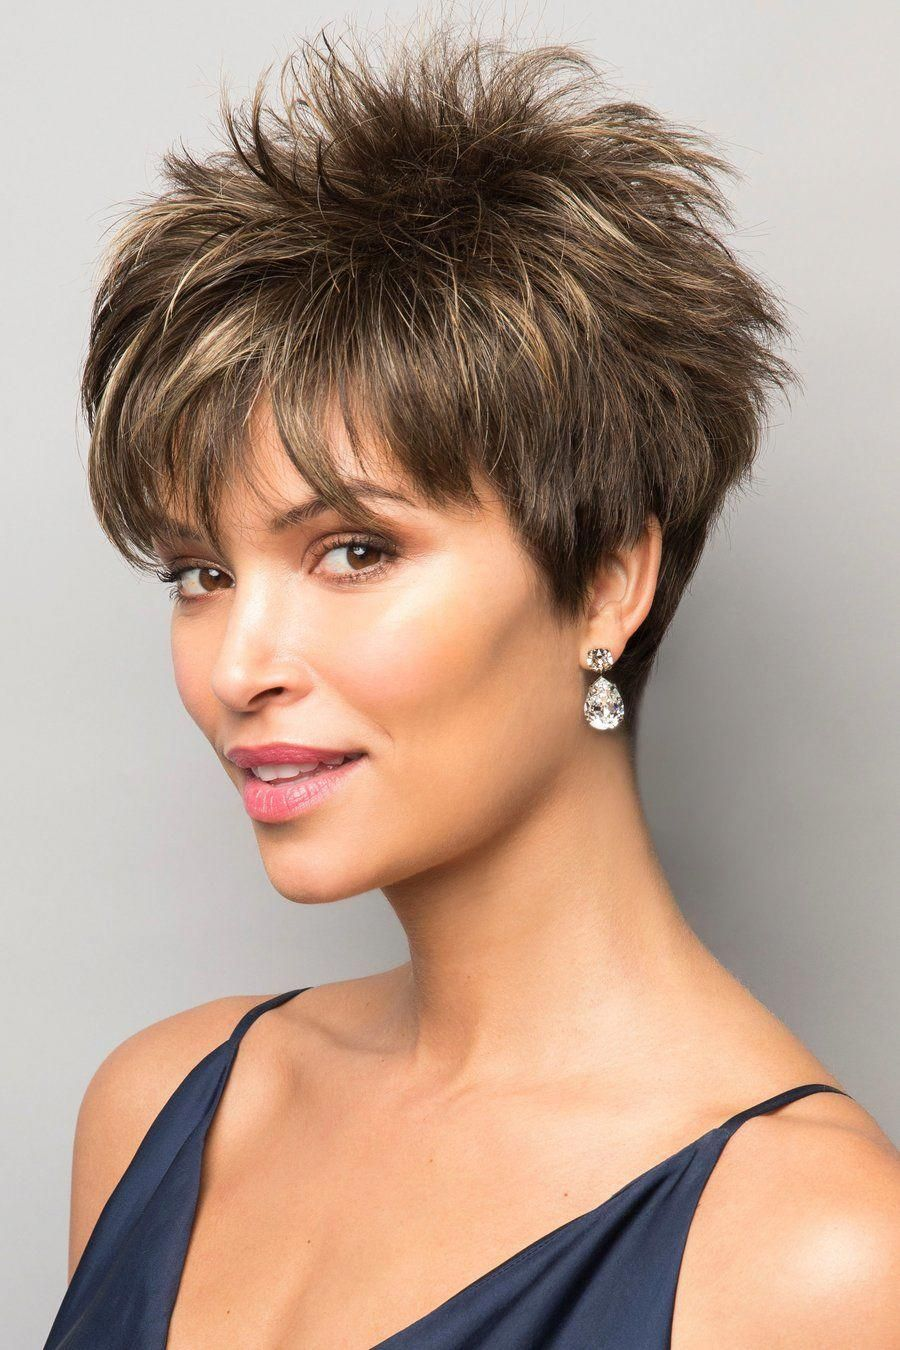 Top Short Sassy Haircut for 2020 that We Love 4A9E19CB-7F3A-41BD-9079-8DD0E89B9241